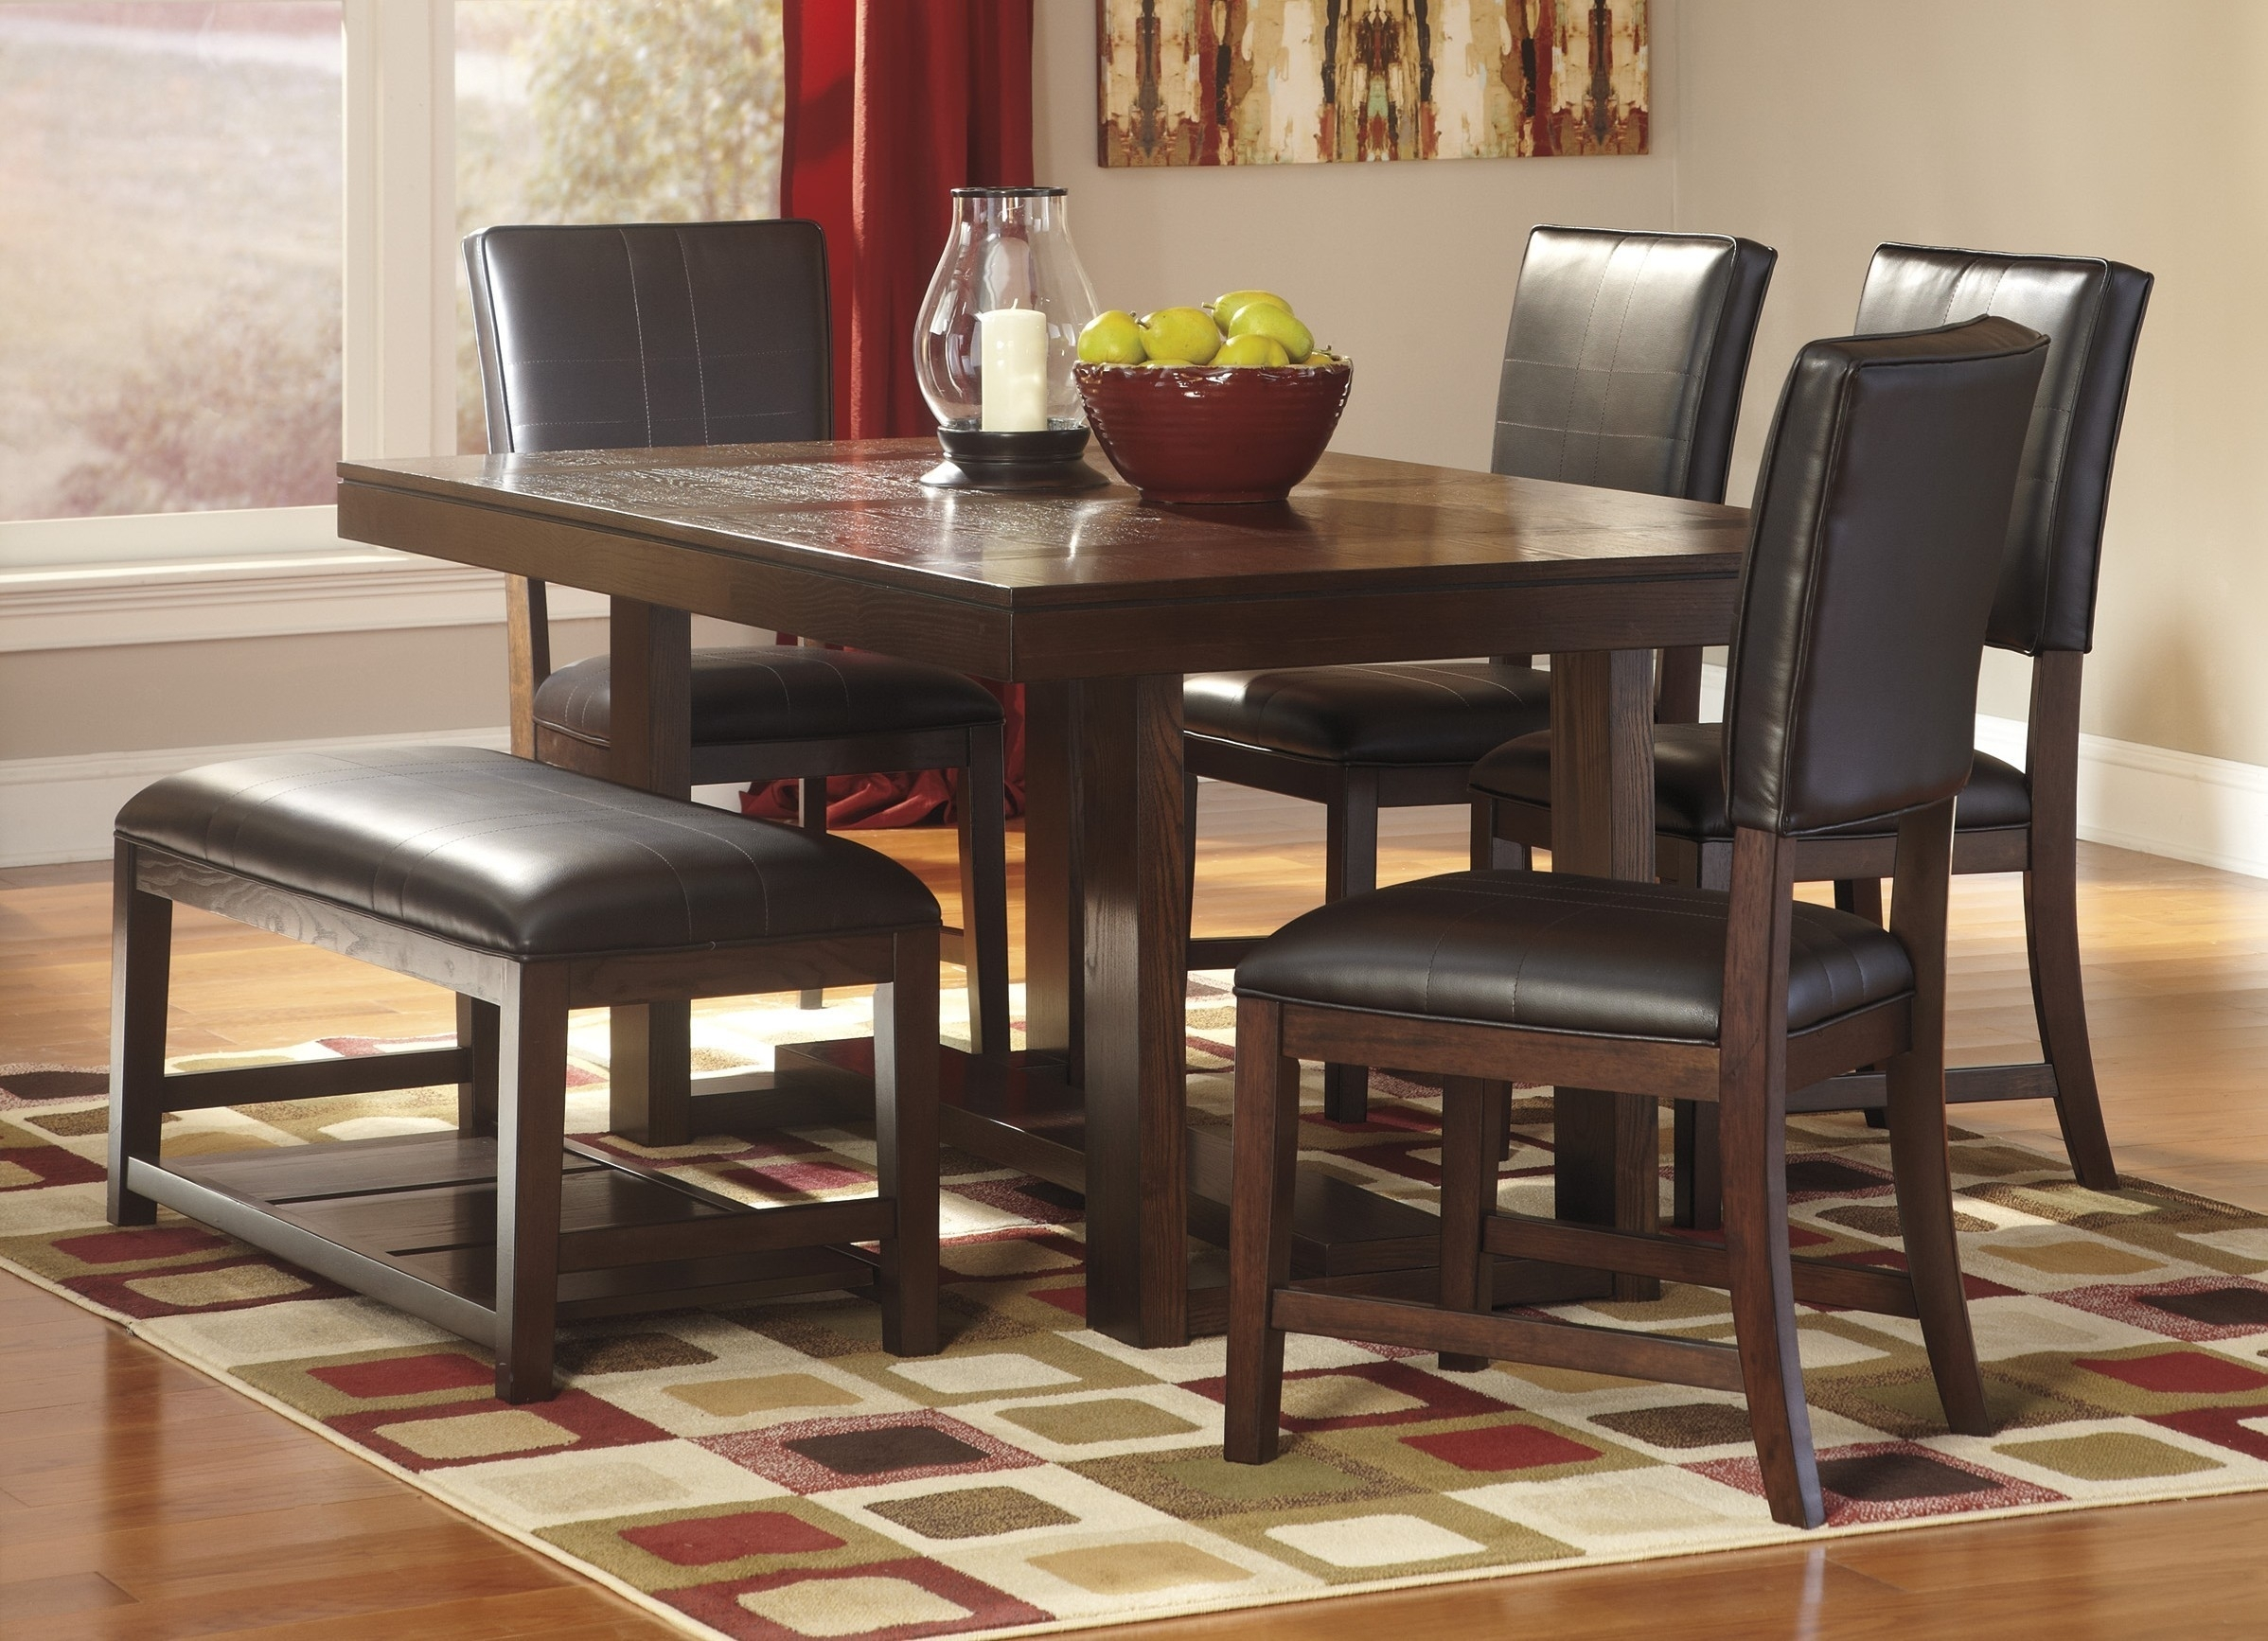 Furniture : Ideas Collection Ashley Furniture Dining Room Sets For For Sofa Chairs With Dining Table (Image 6 of 10)